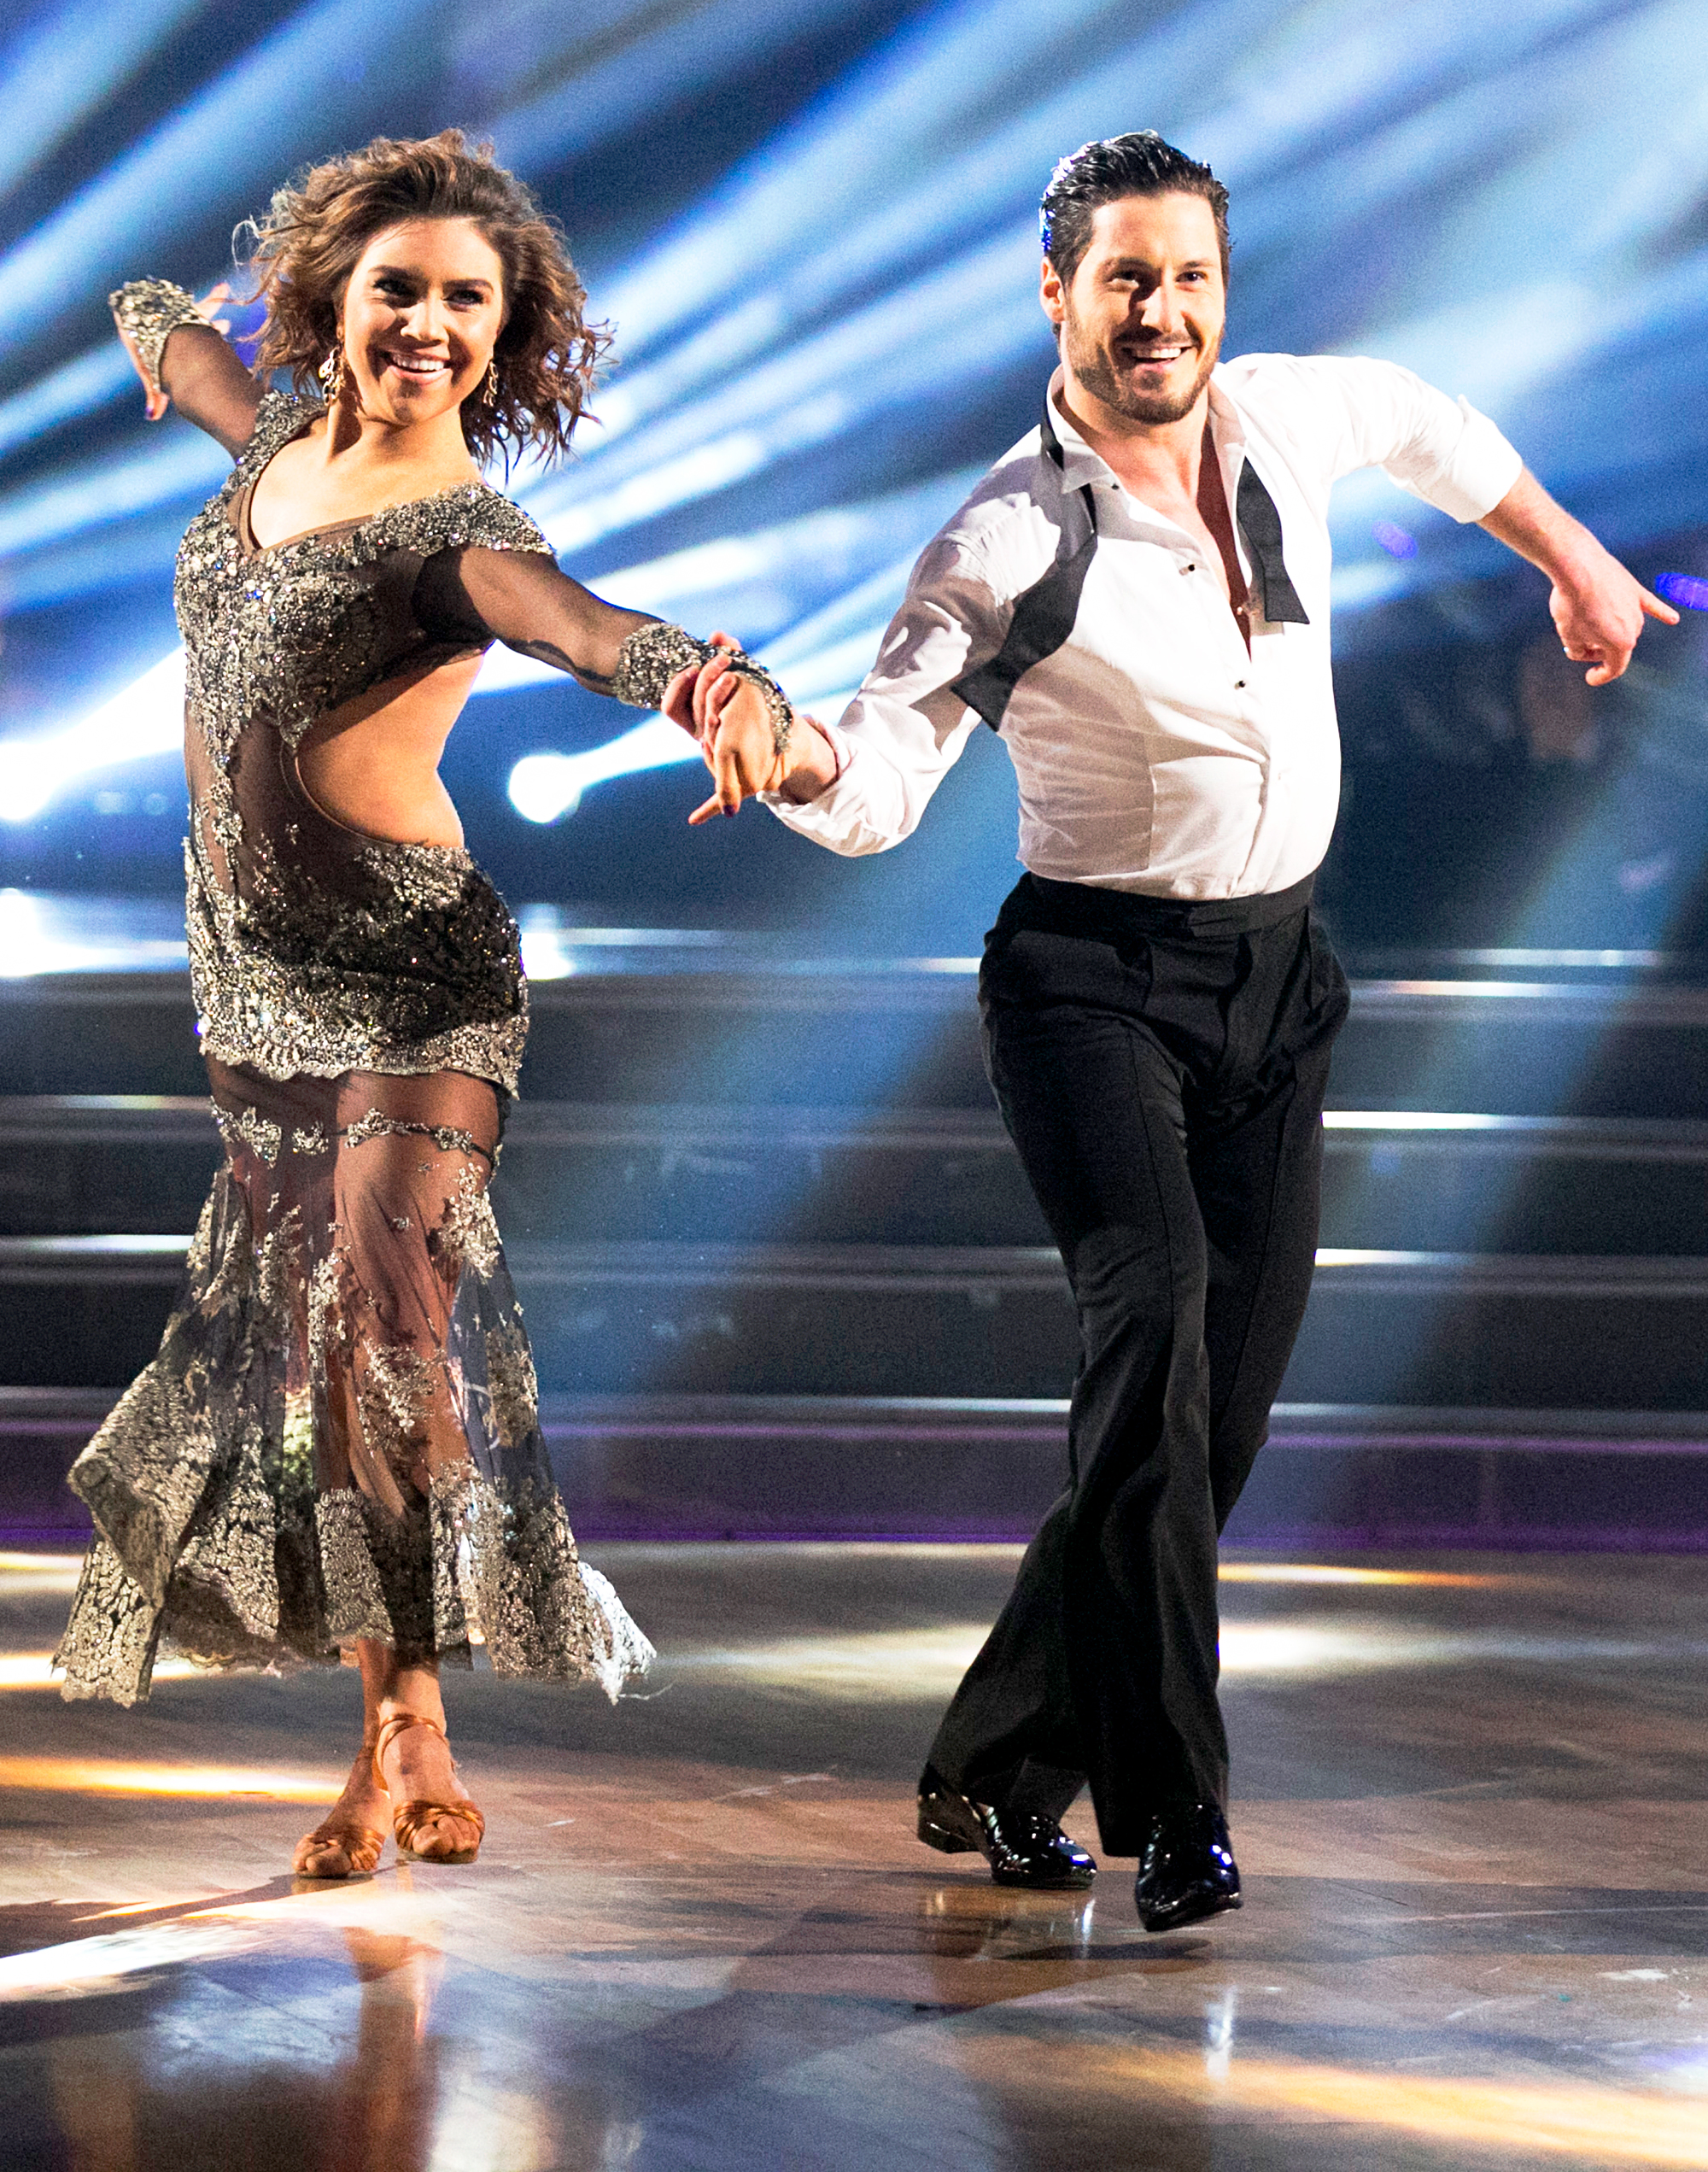 Val and kelly dancing with the stars hookup